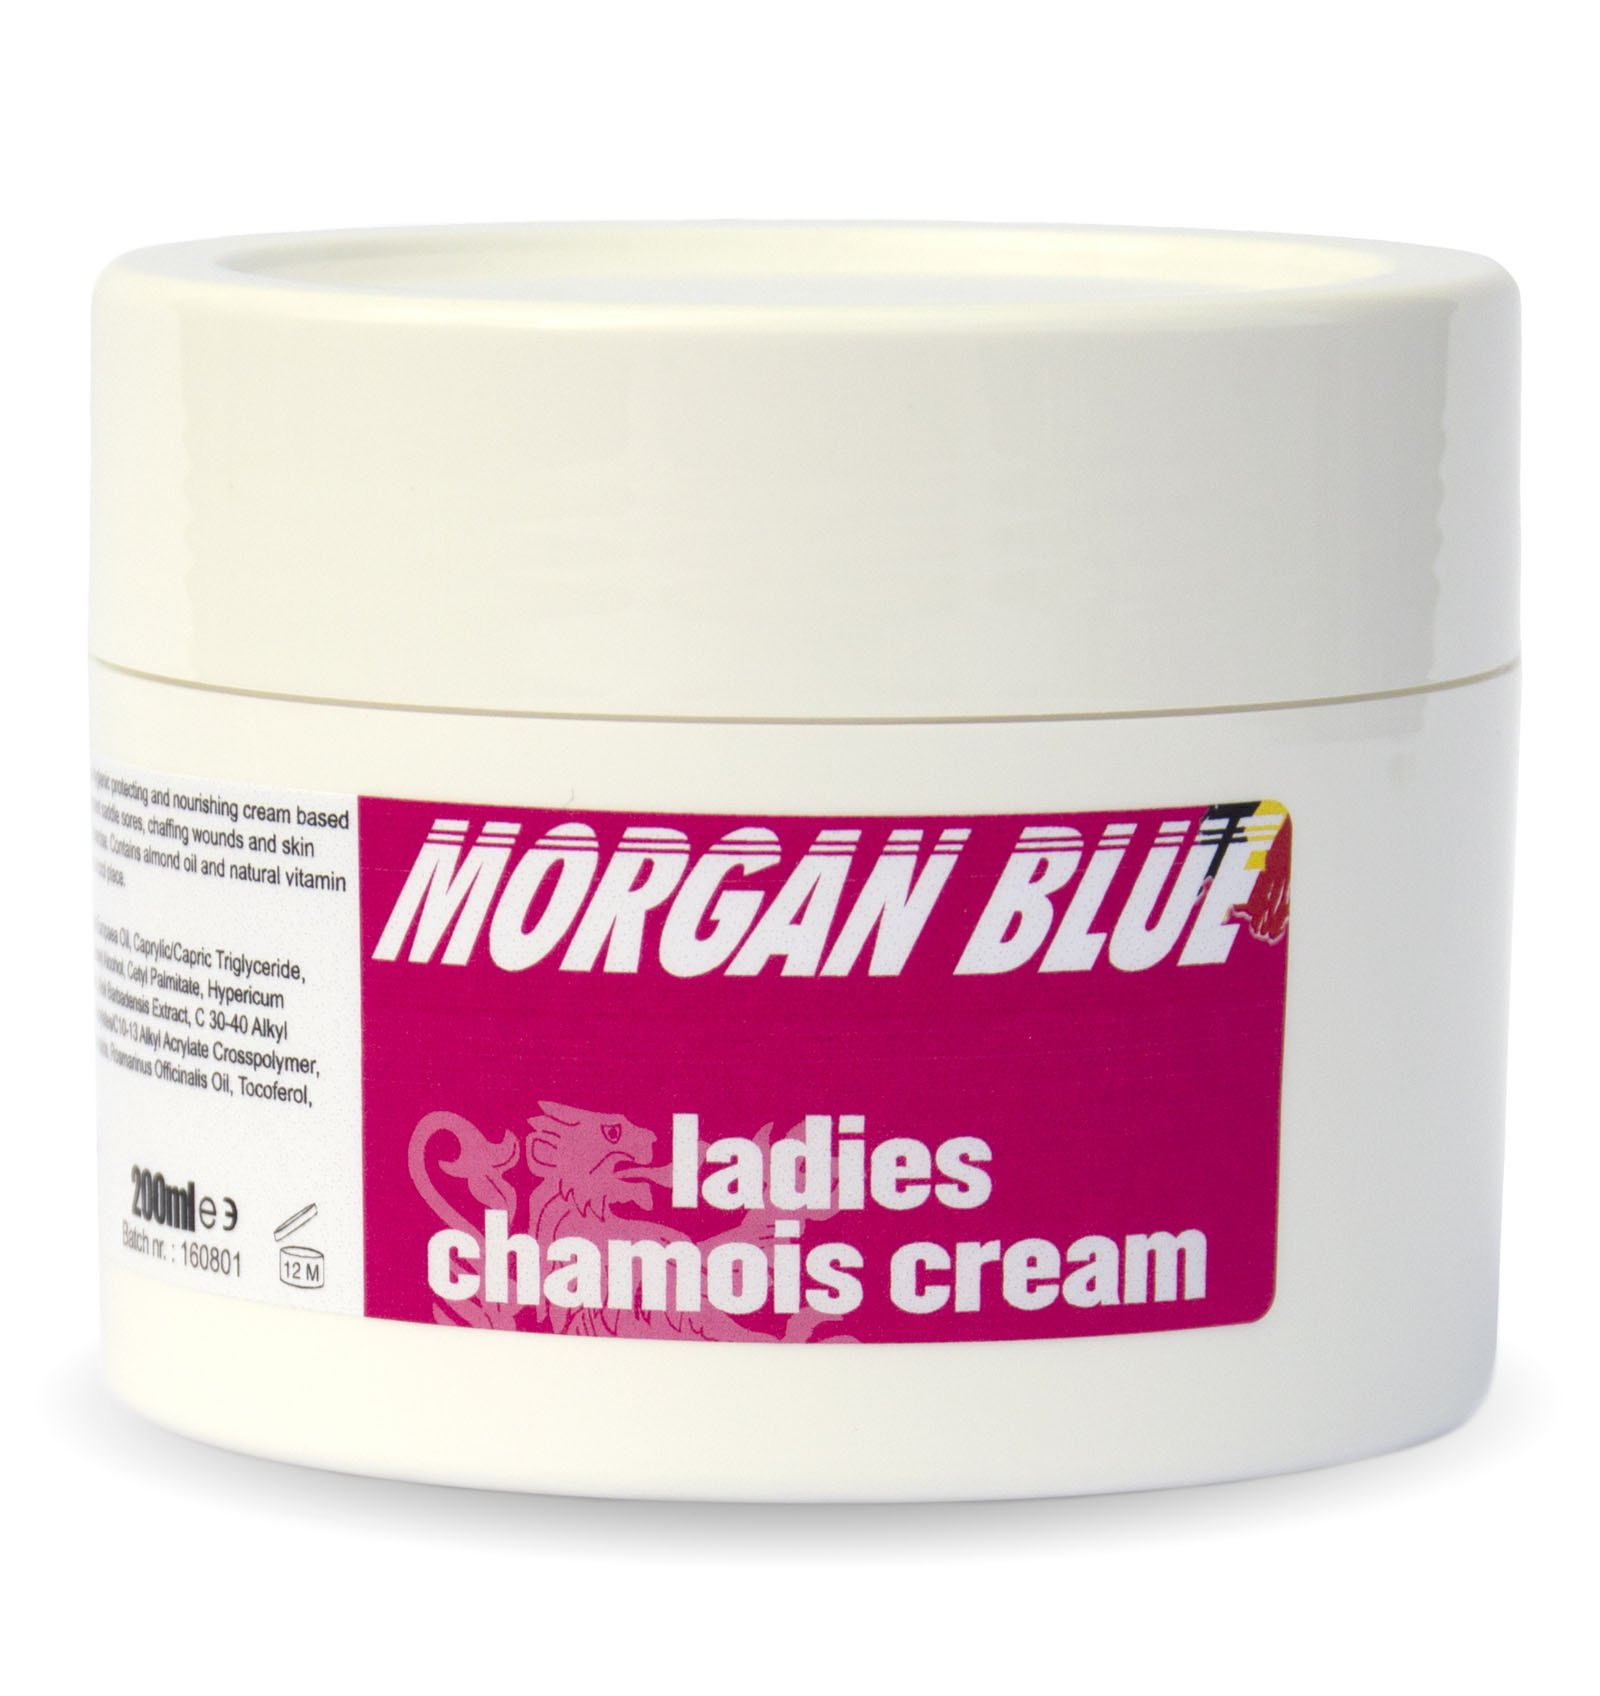 Morgan Blue Ladies chamois cream 200 ml | Personlig pleje